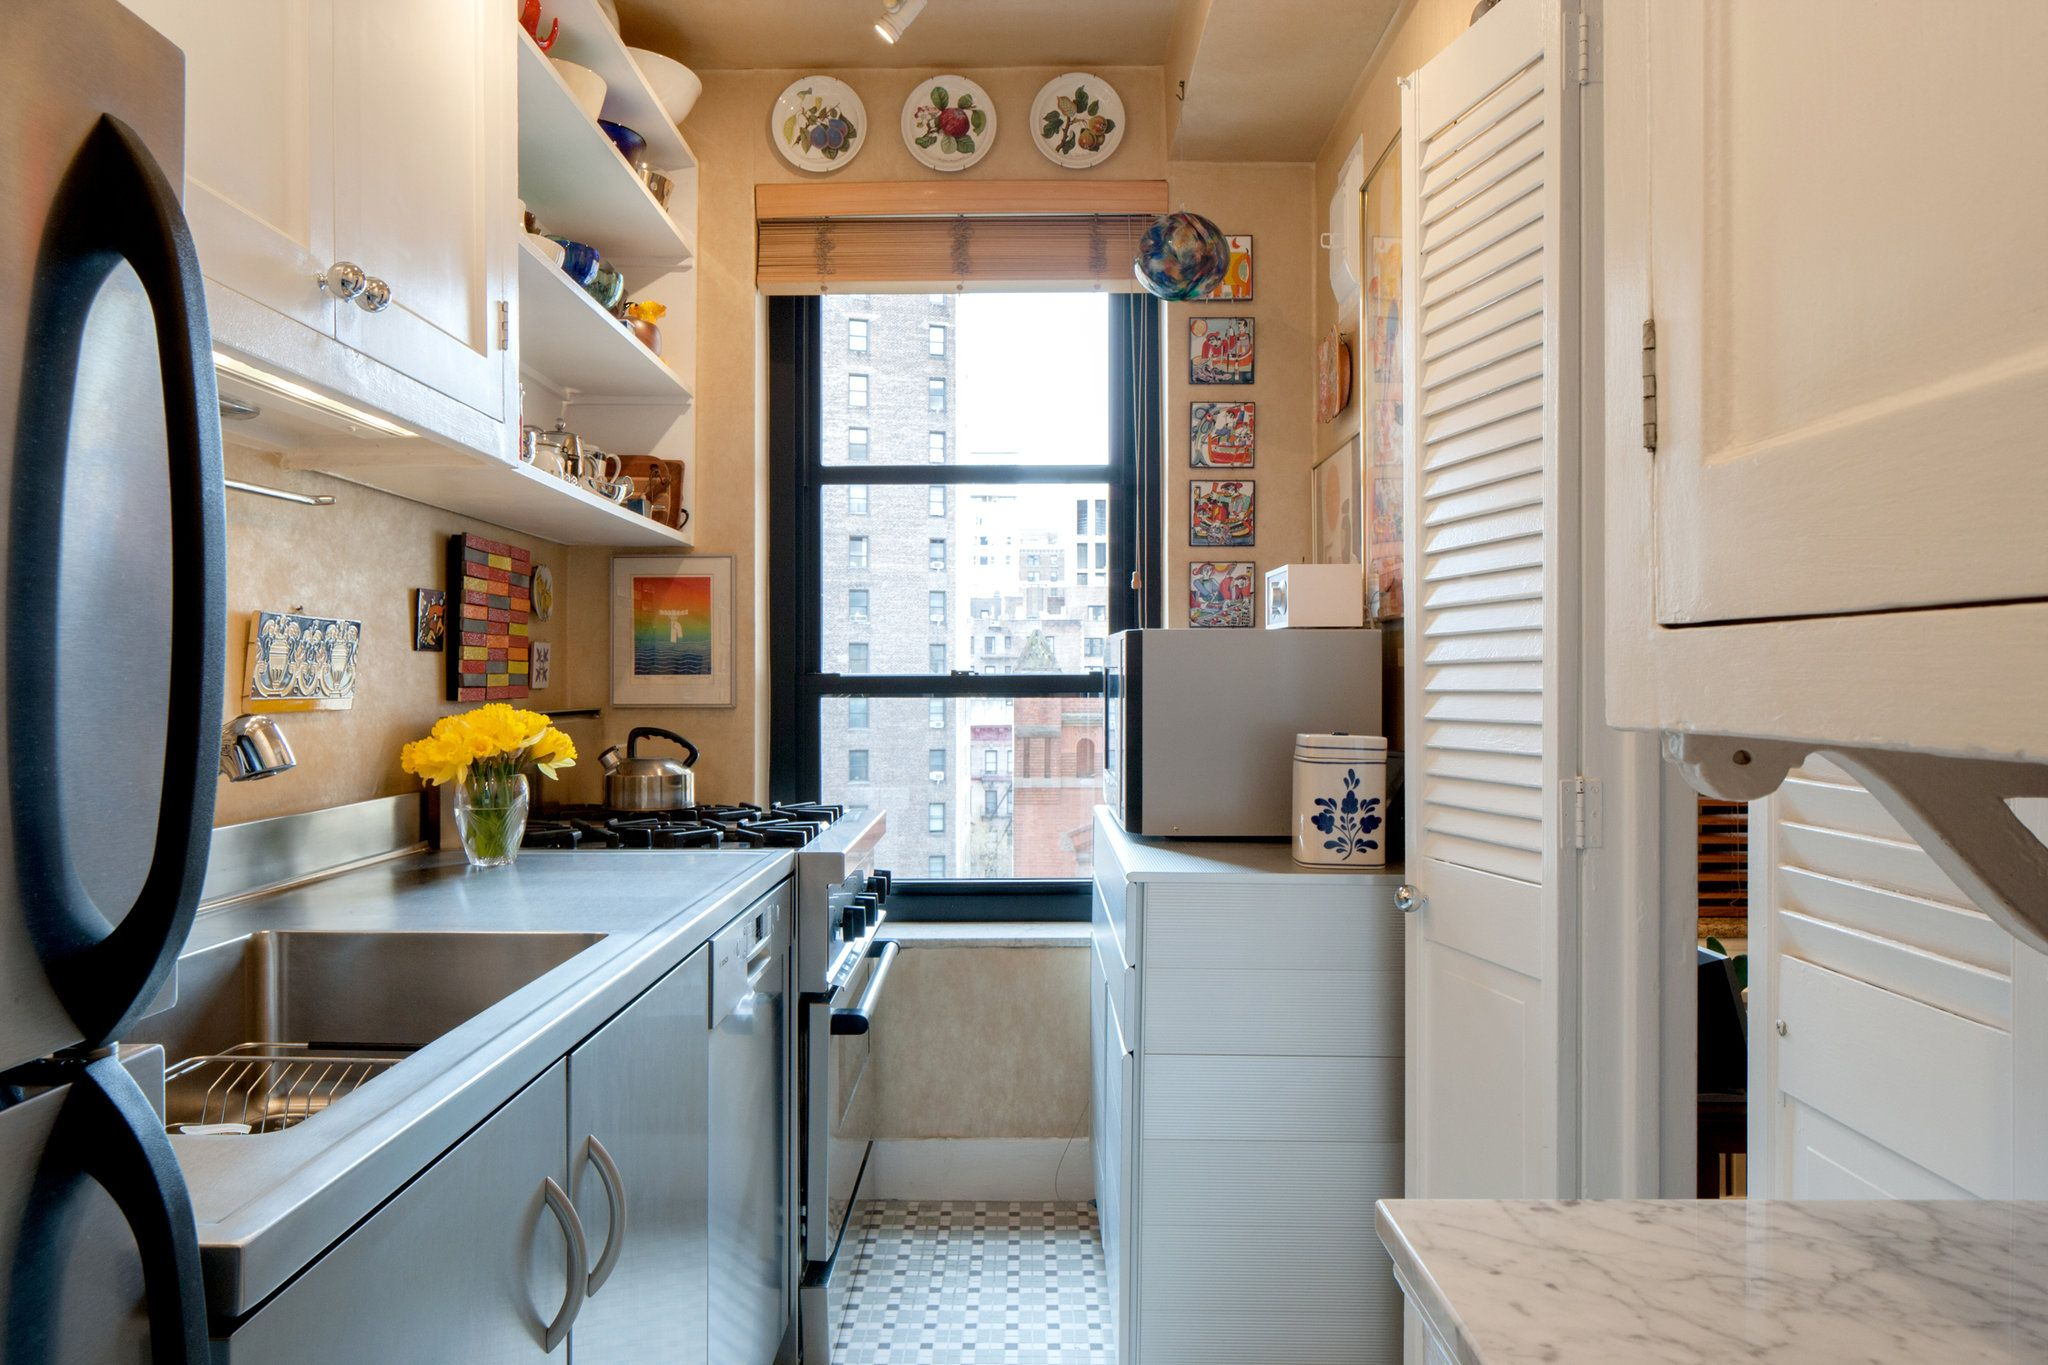 Kitchens On the Market in New York